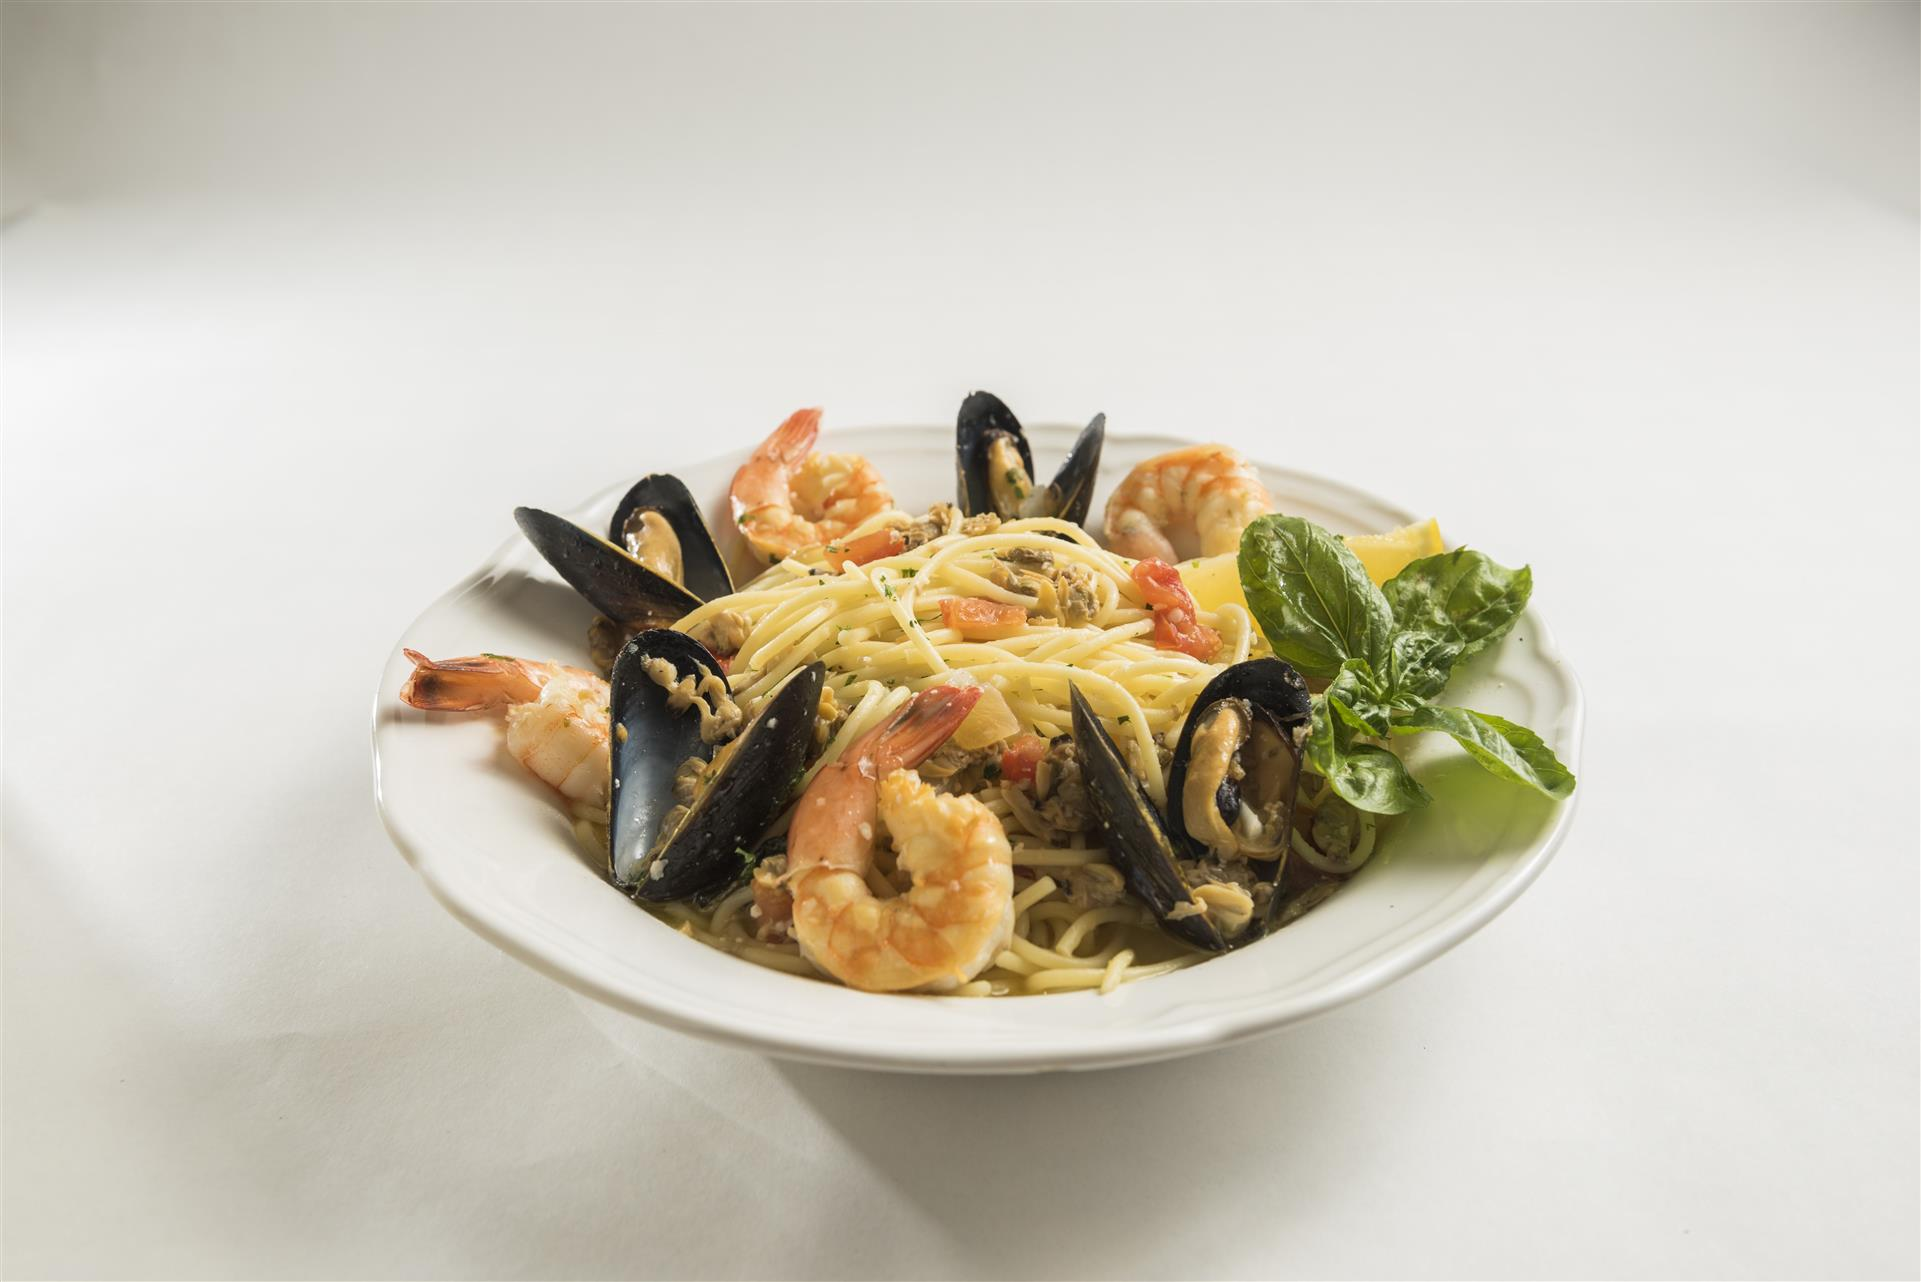 Mussels, prawns & clams with tomato, onion, lemon butter basil white  wine topped over spaghetti